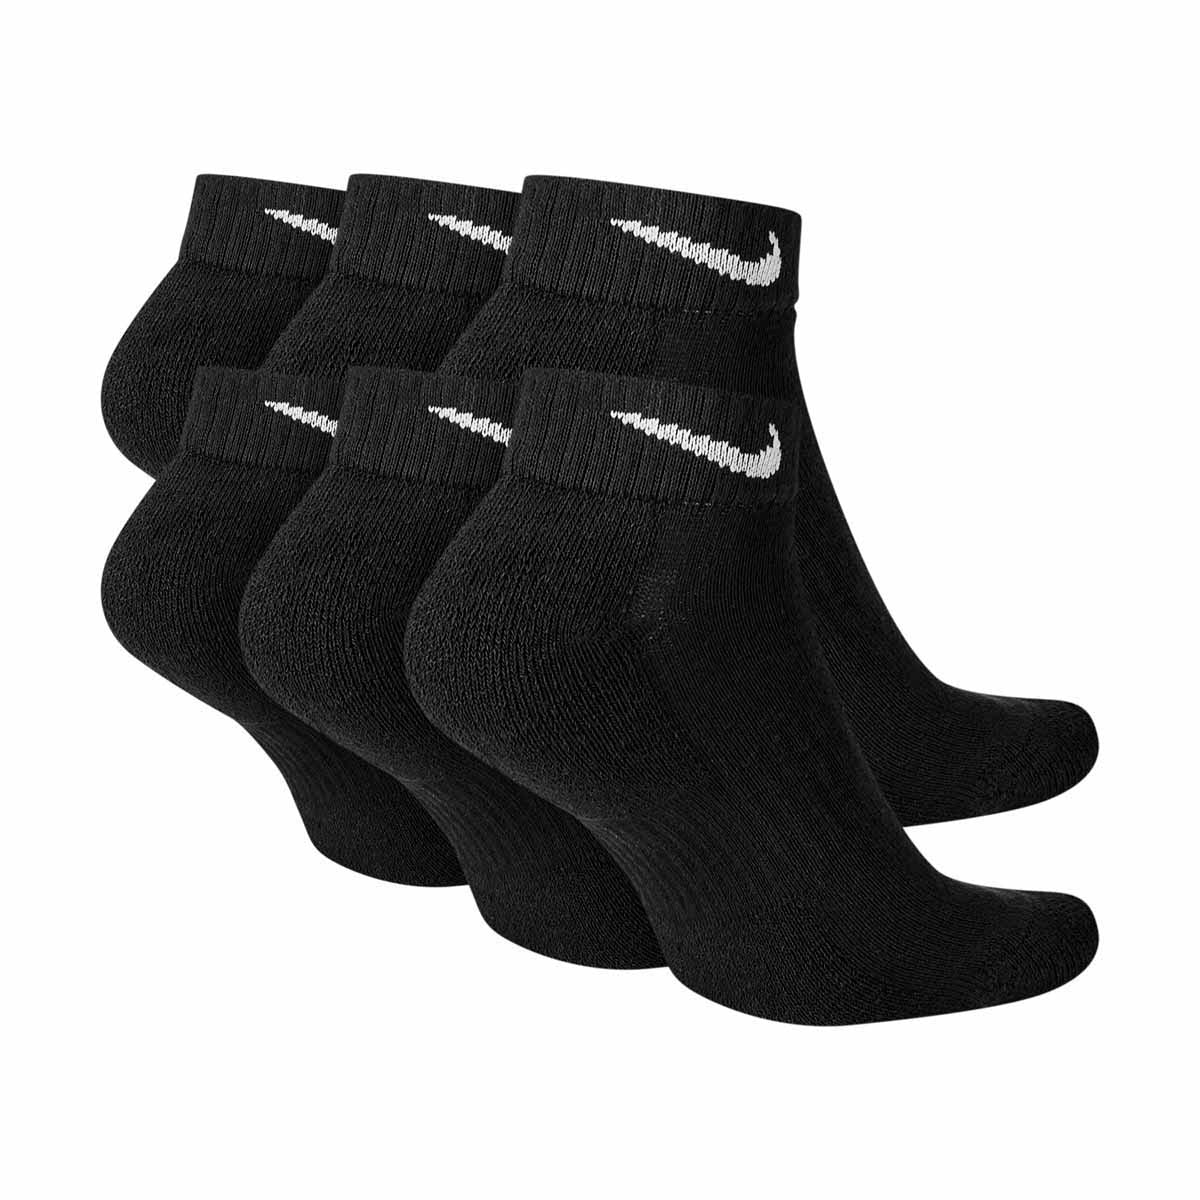 Nike Everyday Cushioned Training Low Socks (6 Pairs)